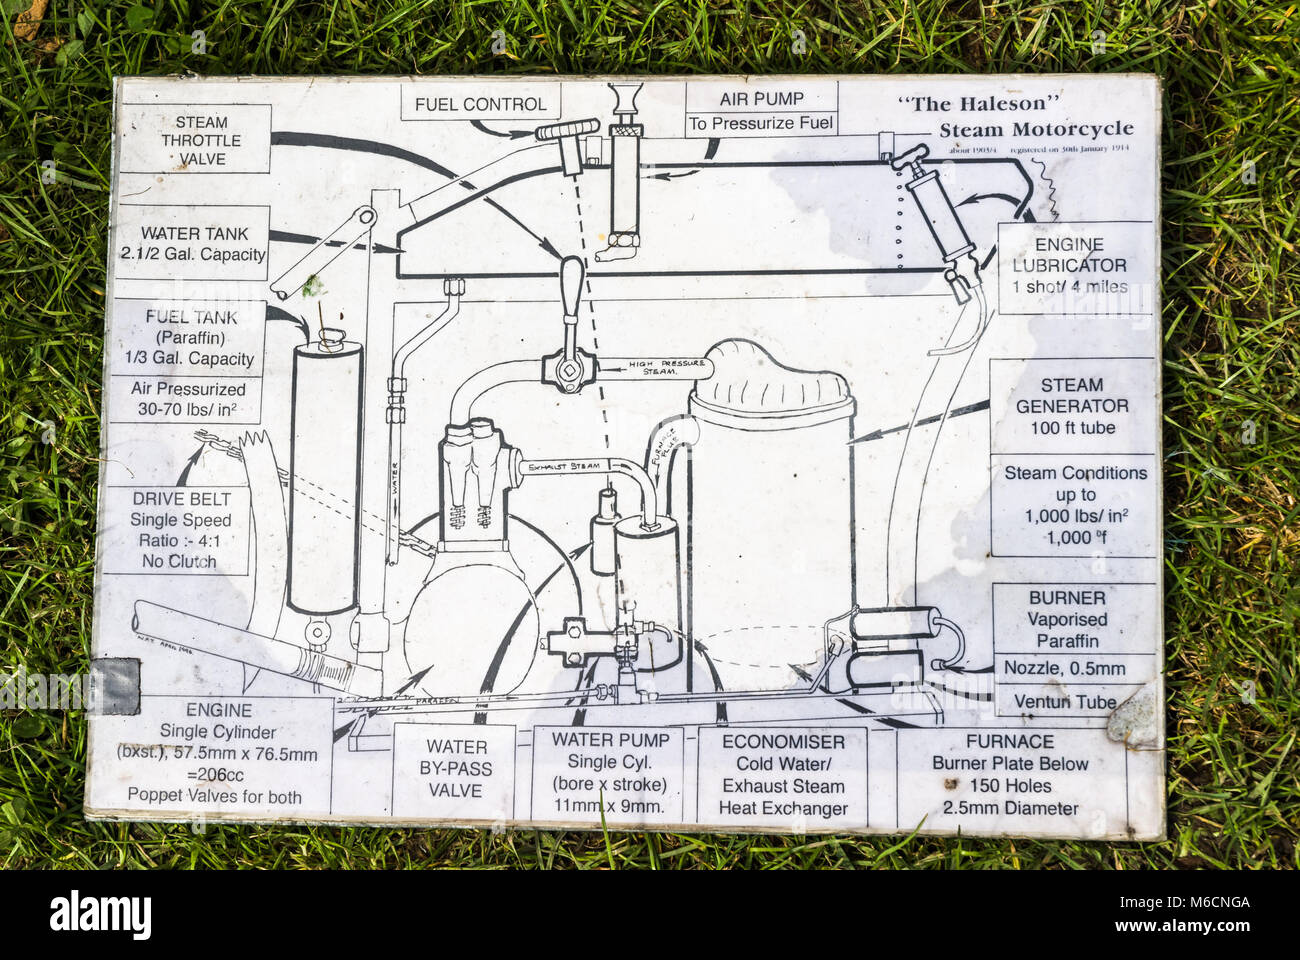 Circuit diagram stock photos circuit diagram stock images alamy the haleson steam motorcycle circuit diagram stock image pooptronica